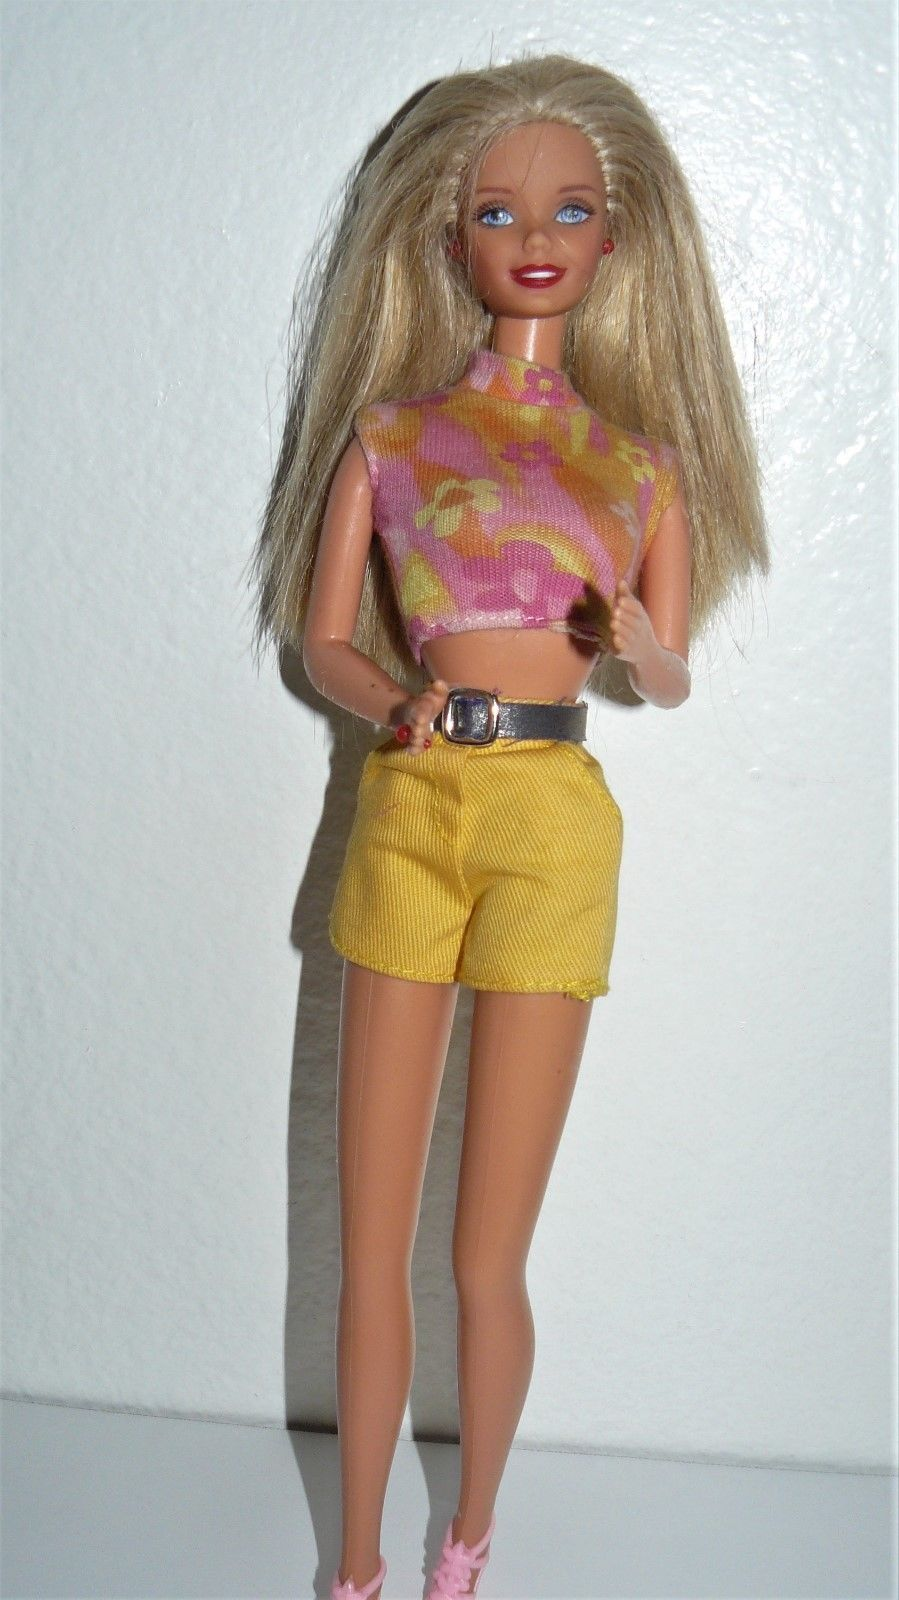 624e00d6a81b Mattel 1970 s Twist  N Turn Barbie Doll in and 50 similar items. S l1600